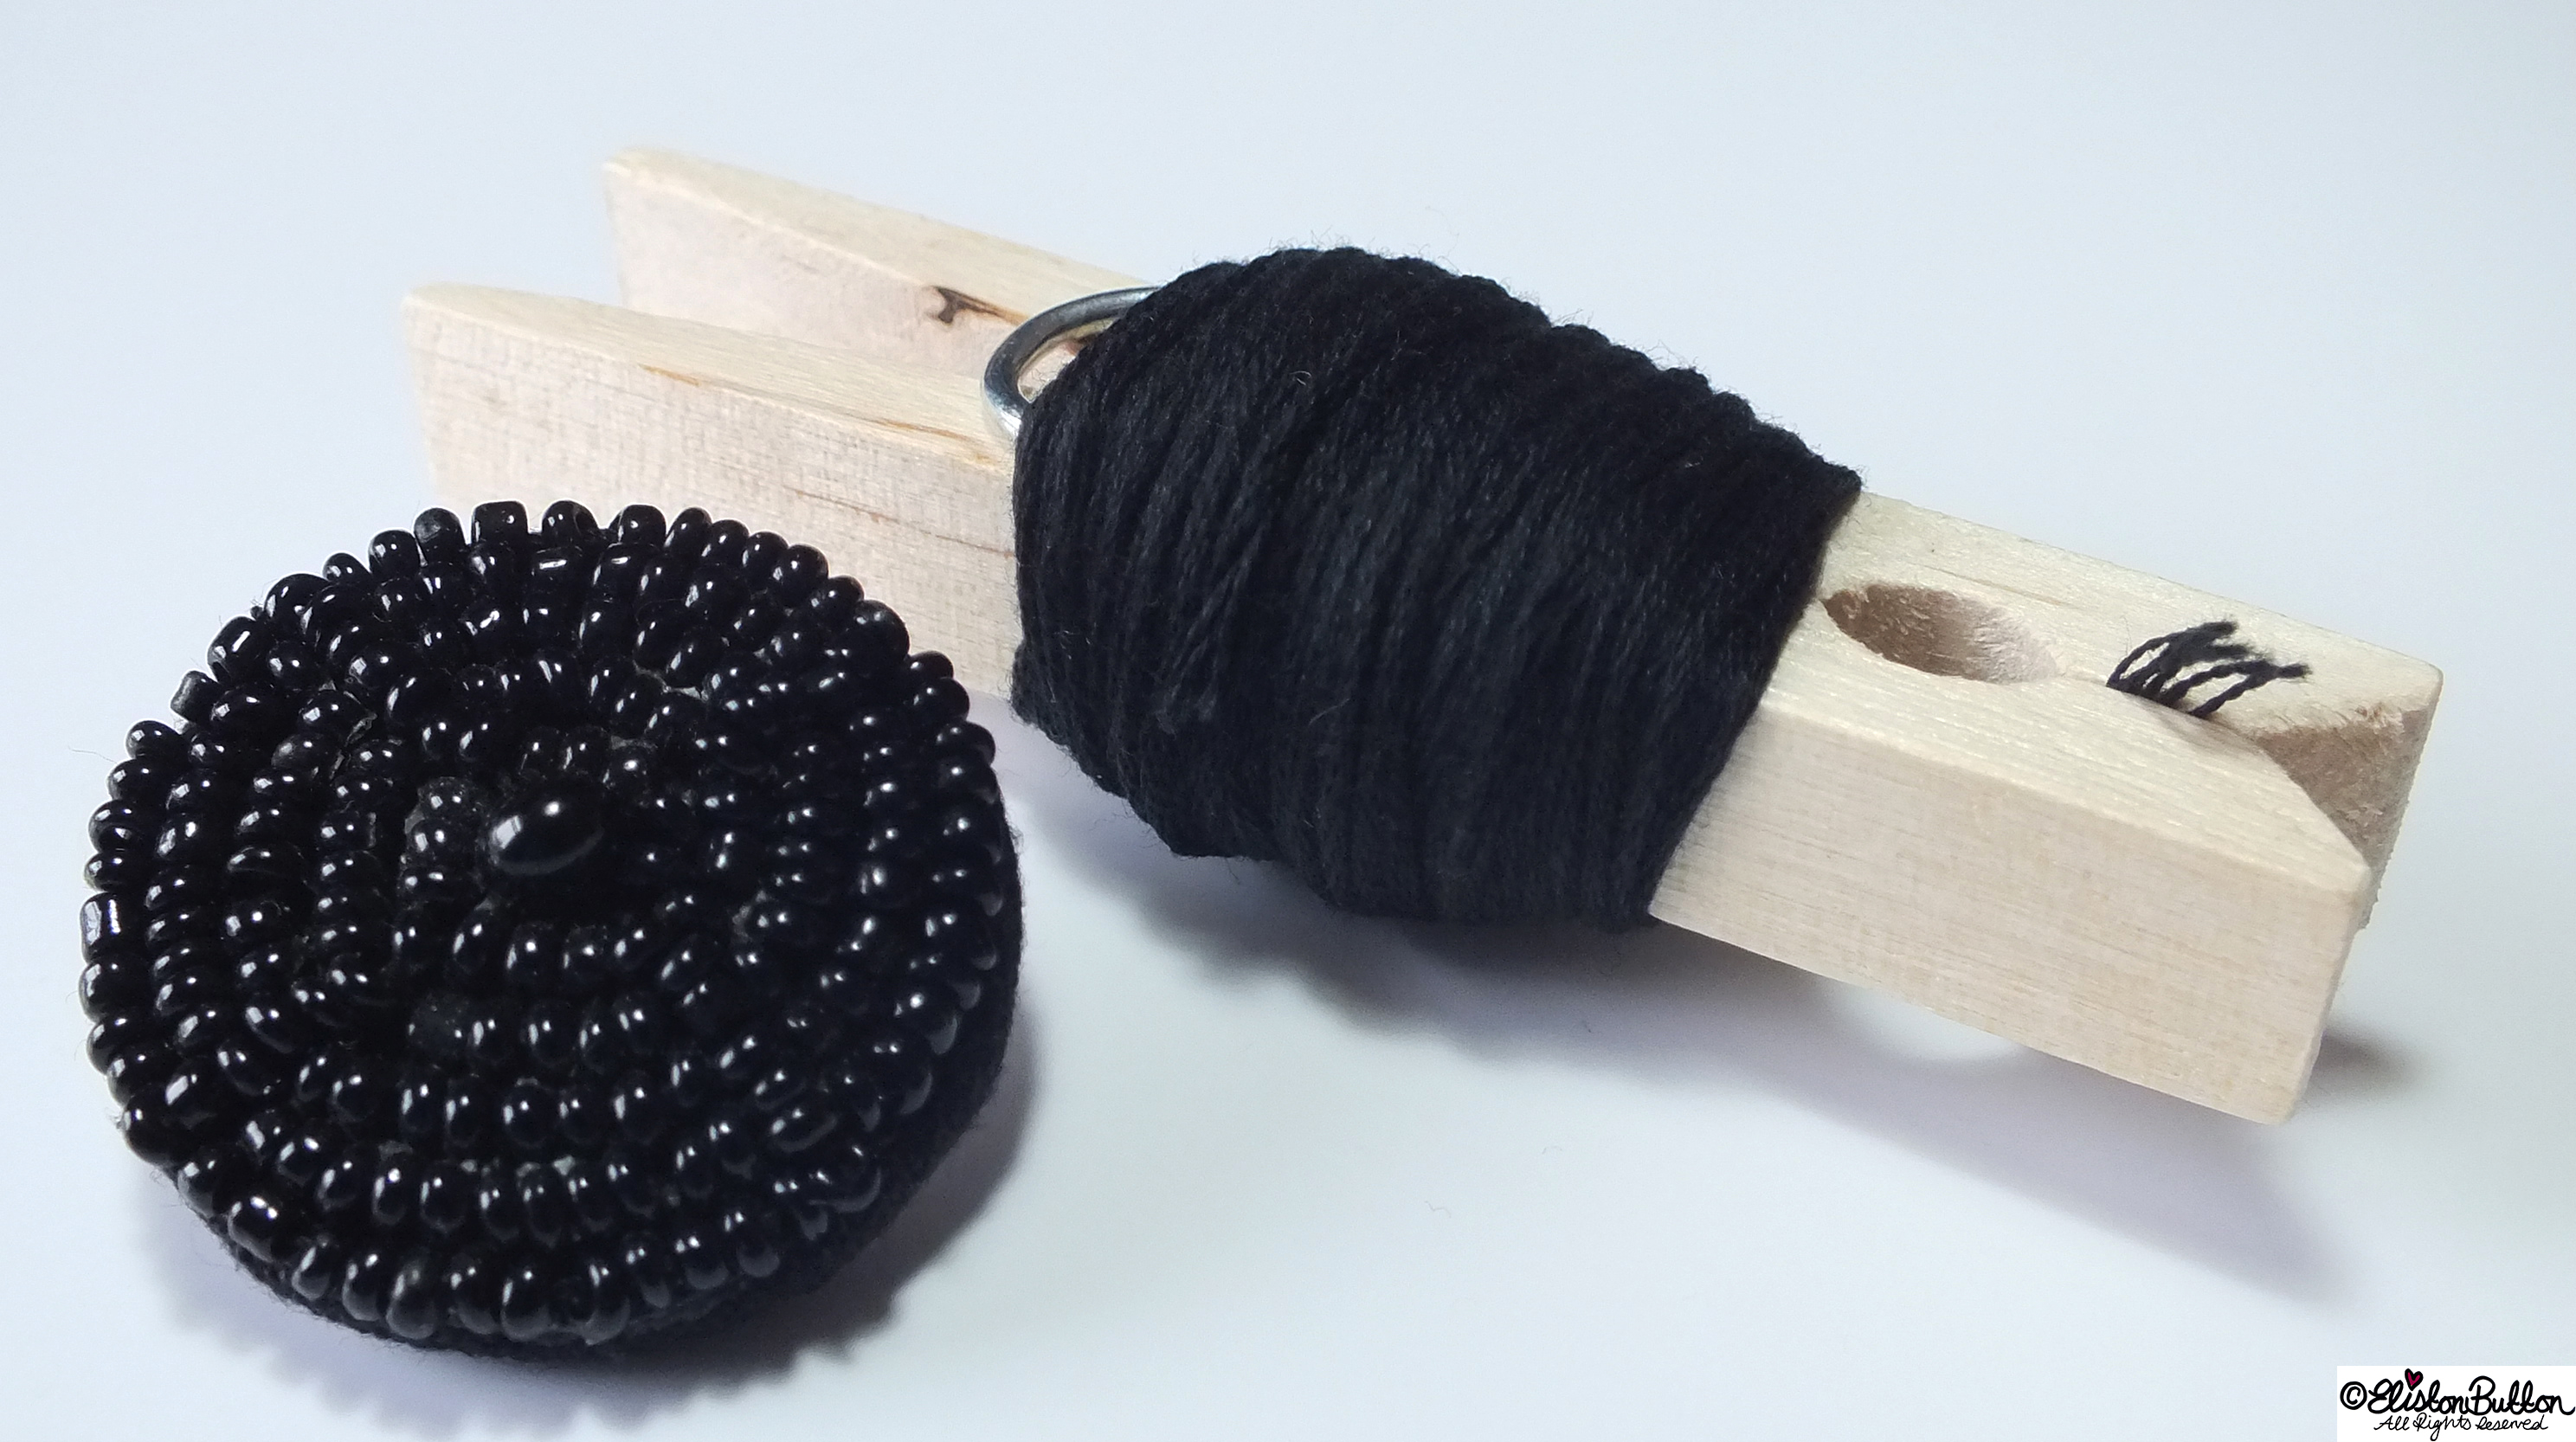 Beaded Black Button and Black Embroidery Thread - 27 Before 27 - Sunny Days at www.elistonbutton.com - Eliston Button - That Crafty Kid – Art, Design, Craft & Adventure.